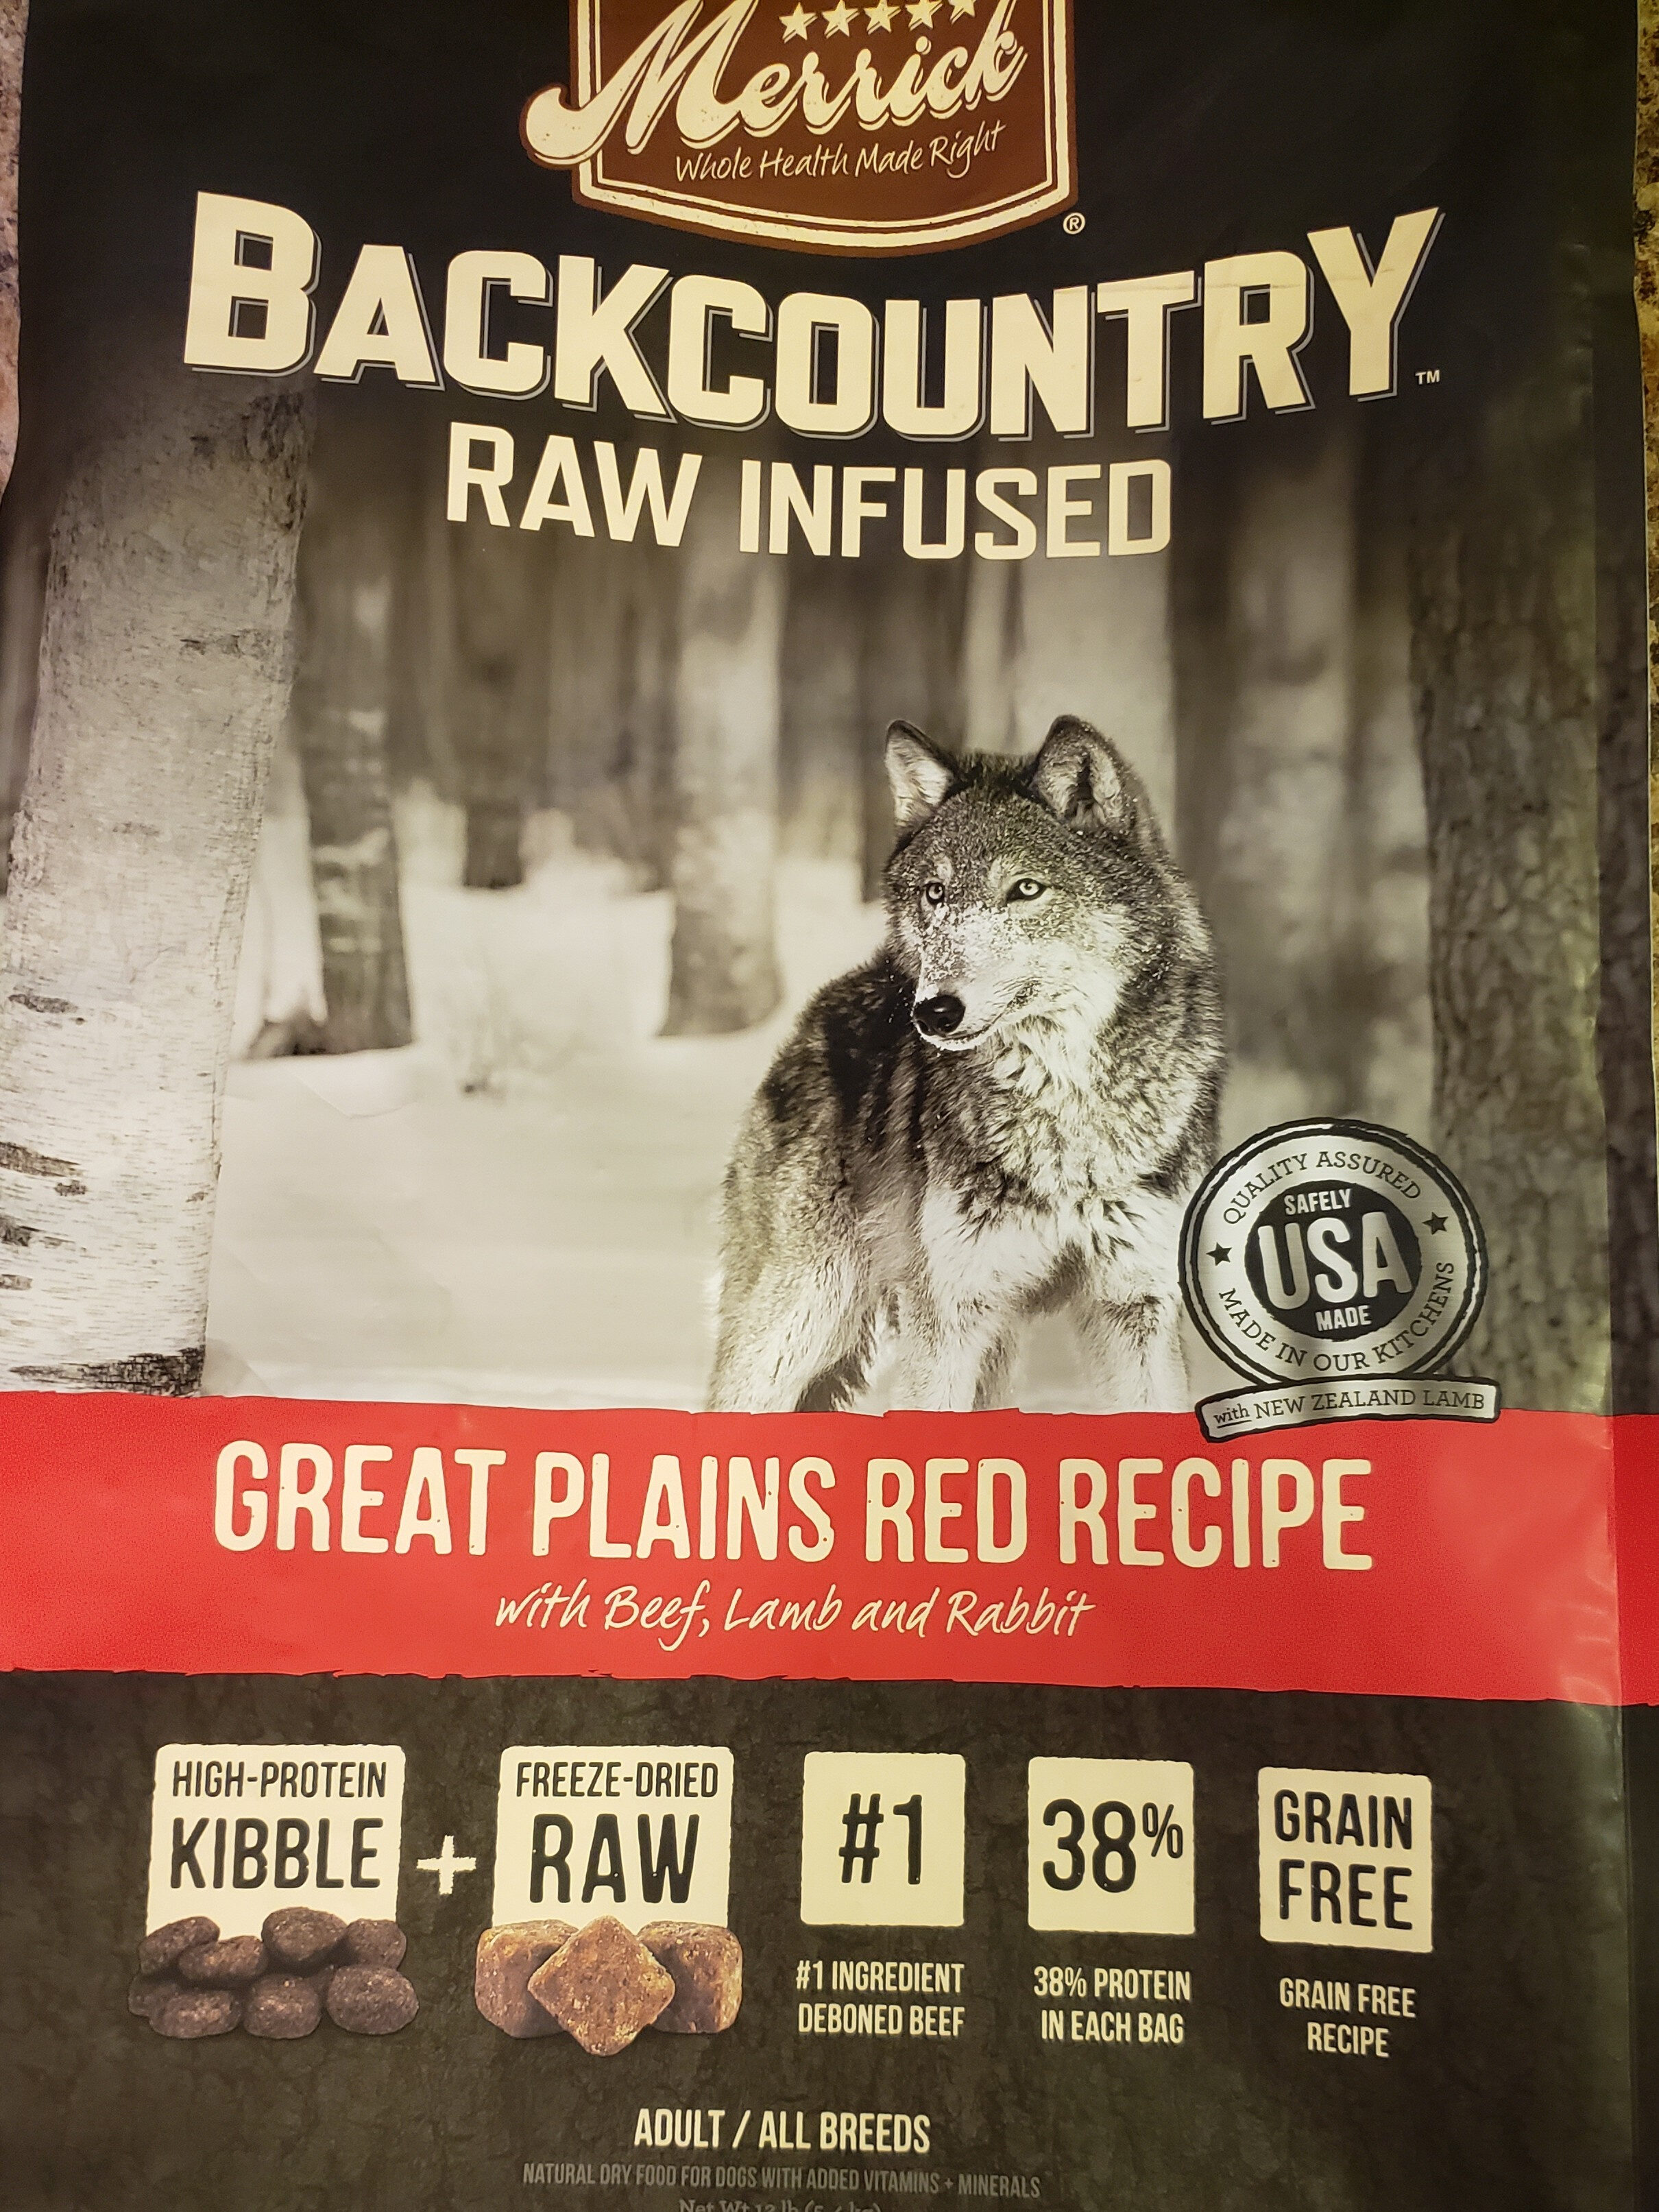 Back Country Raw Infused - Product